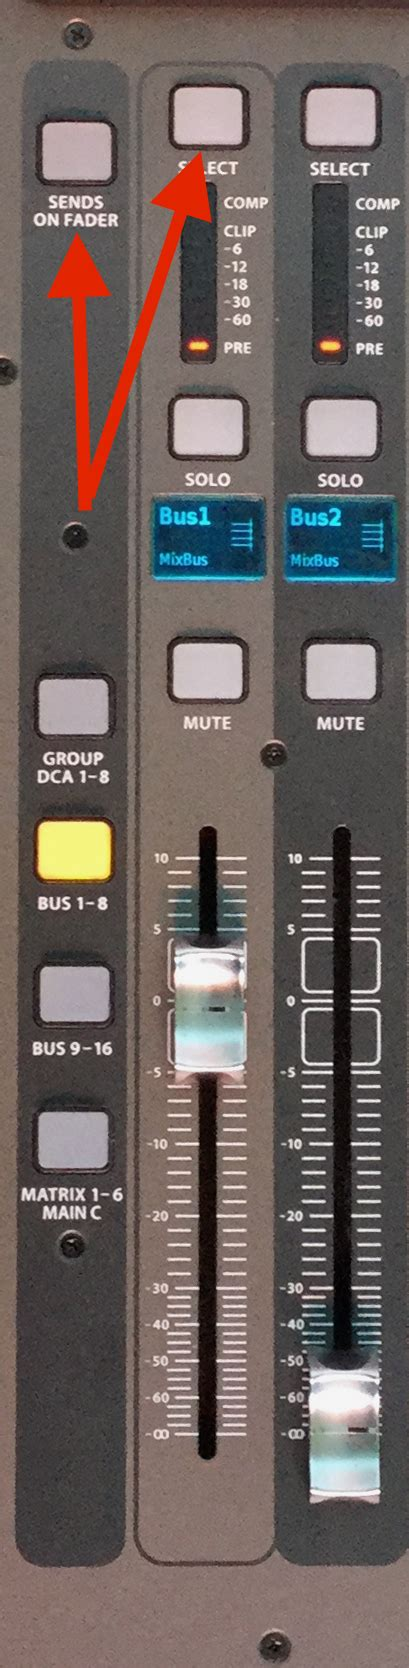 Yarden Xzs X 32 X32 Universal Stereo Bass Ear behringer x232 how to route an input to a sweetcare